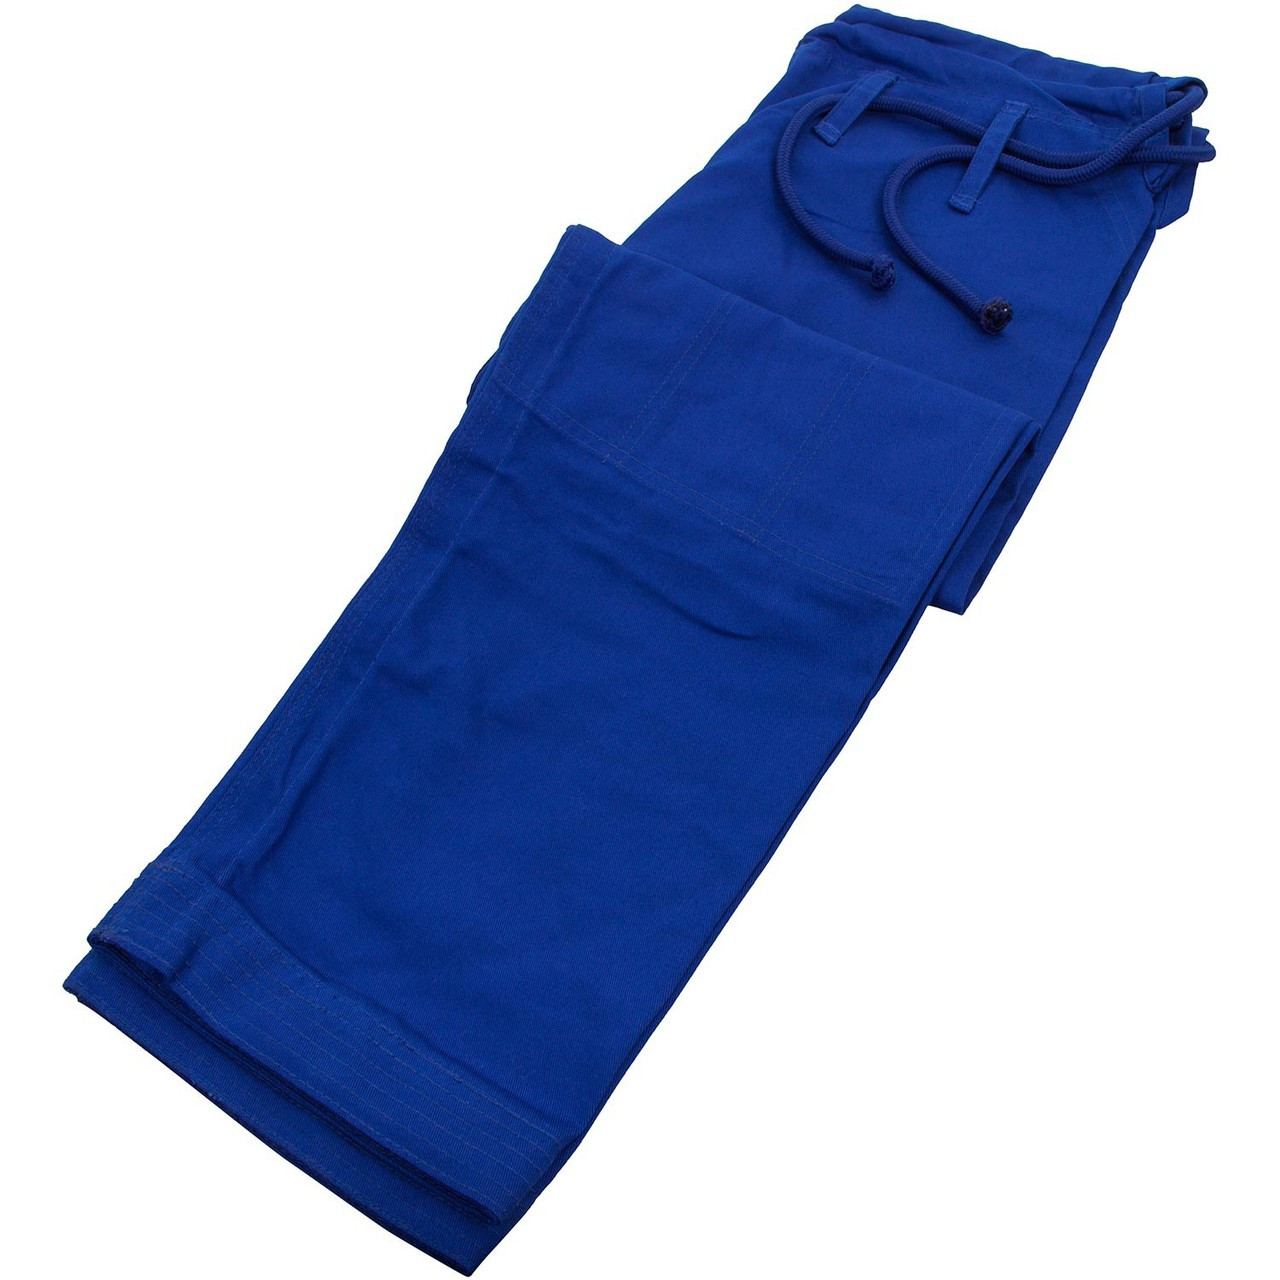 Pants from the Venum Contender 2.0 Blue BJJ GI available at www.thejiujitsushop.com  Enjoy Free Shipping from The Jiu Jitsu Shop today!